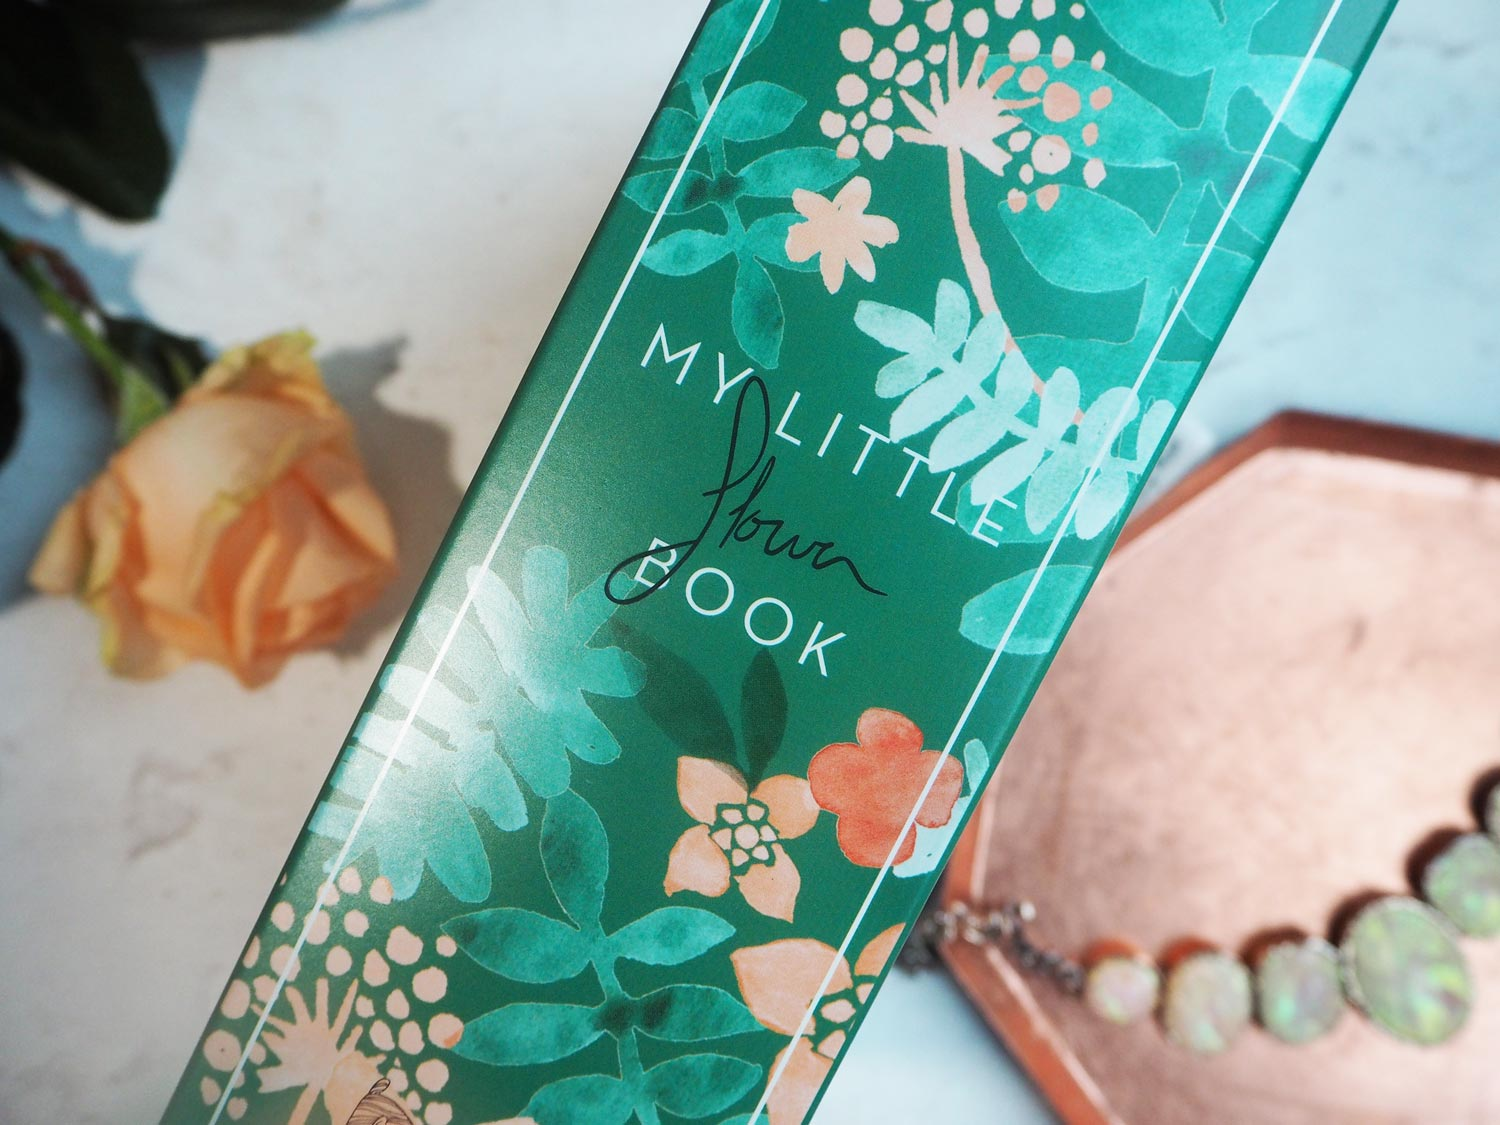 my-little-flower-box-review